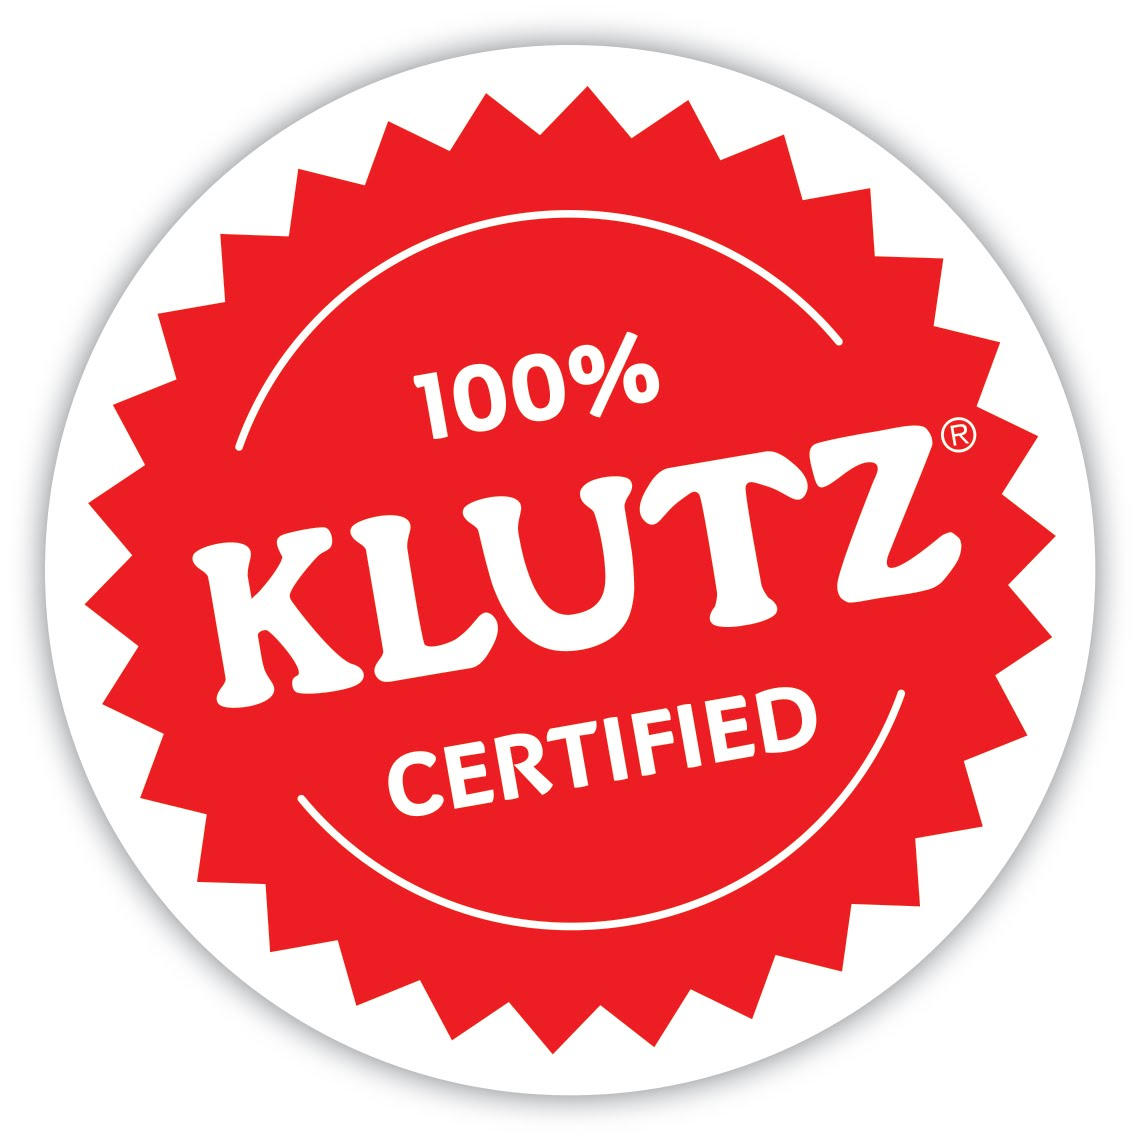 Shop now at Klutz.com